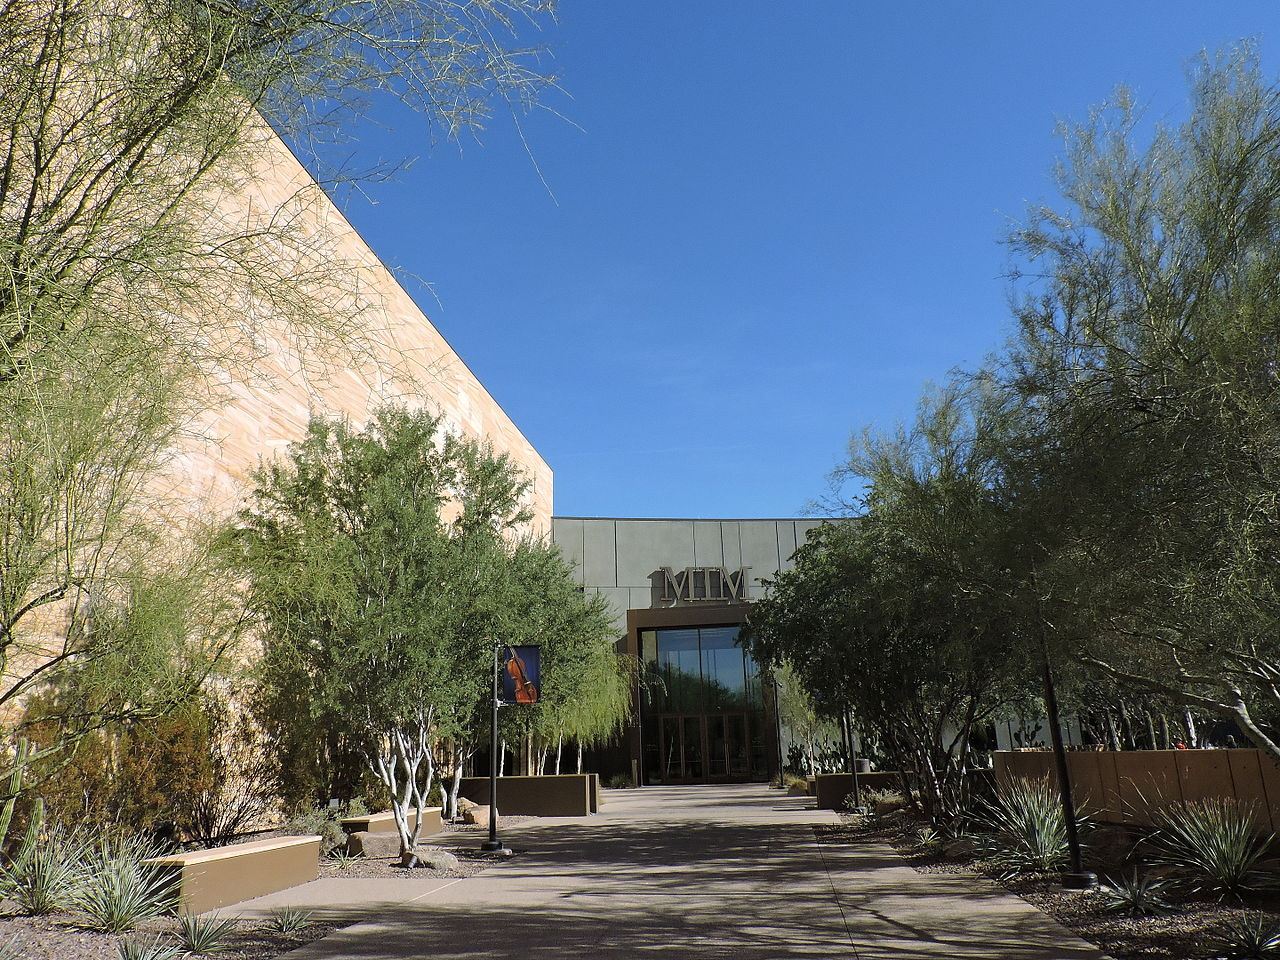 Amazing Place To Visit In Phoenix-Musical Instrument Museum